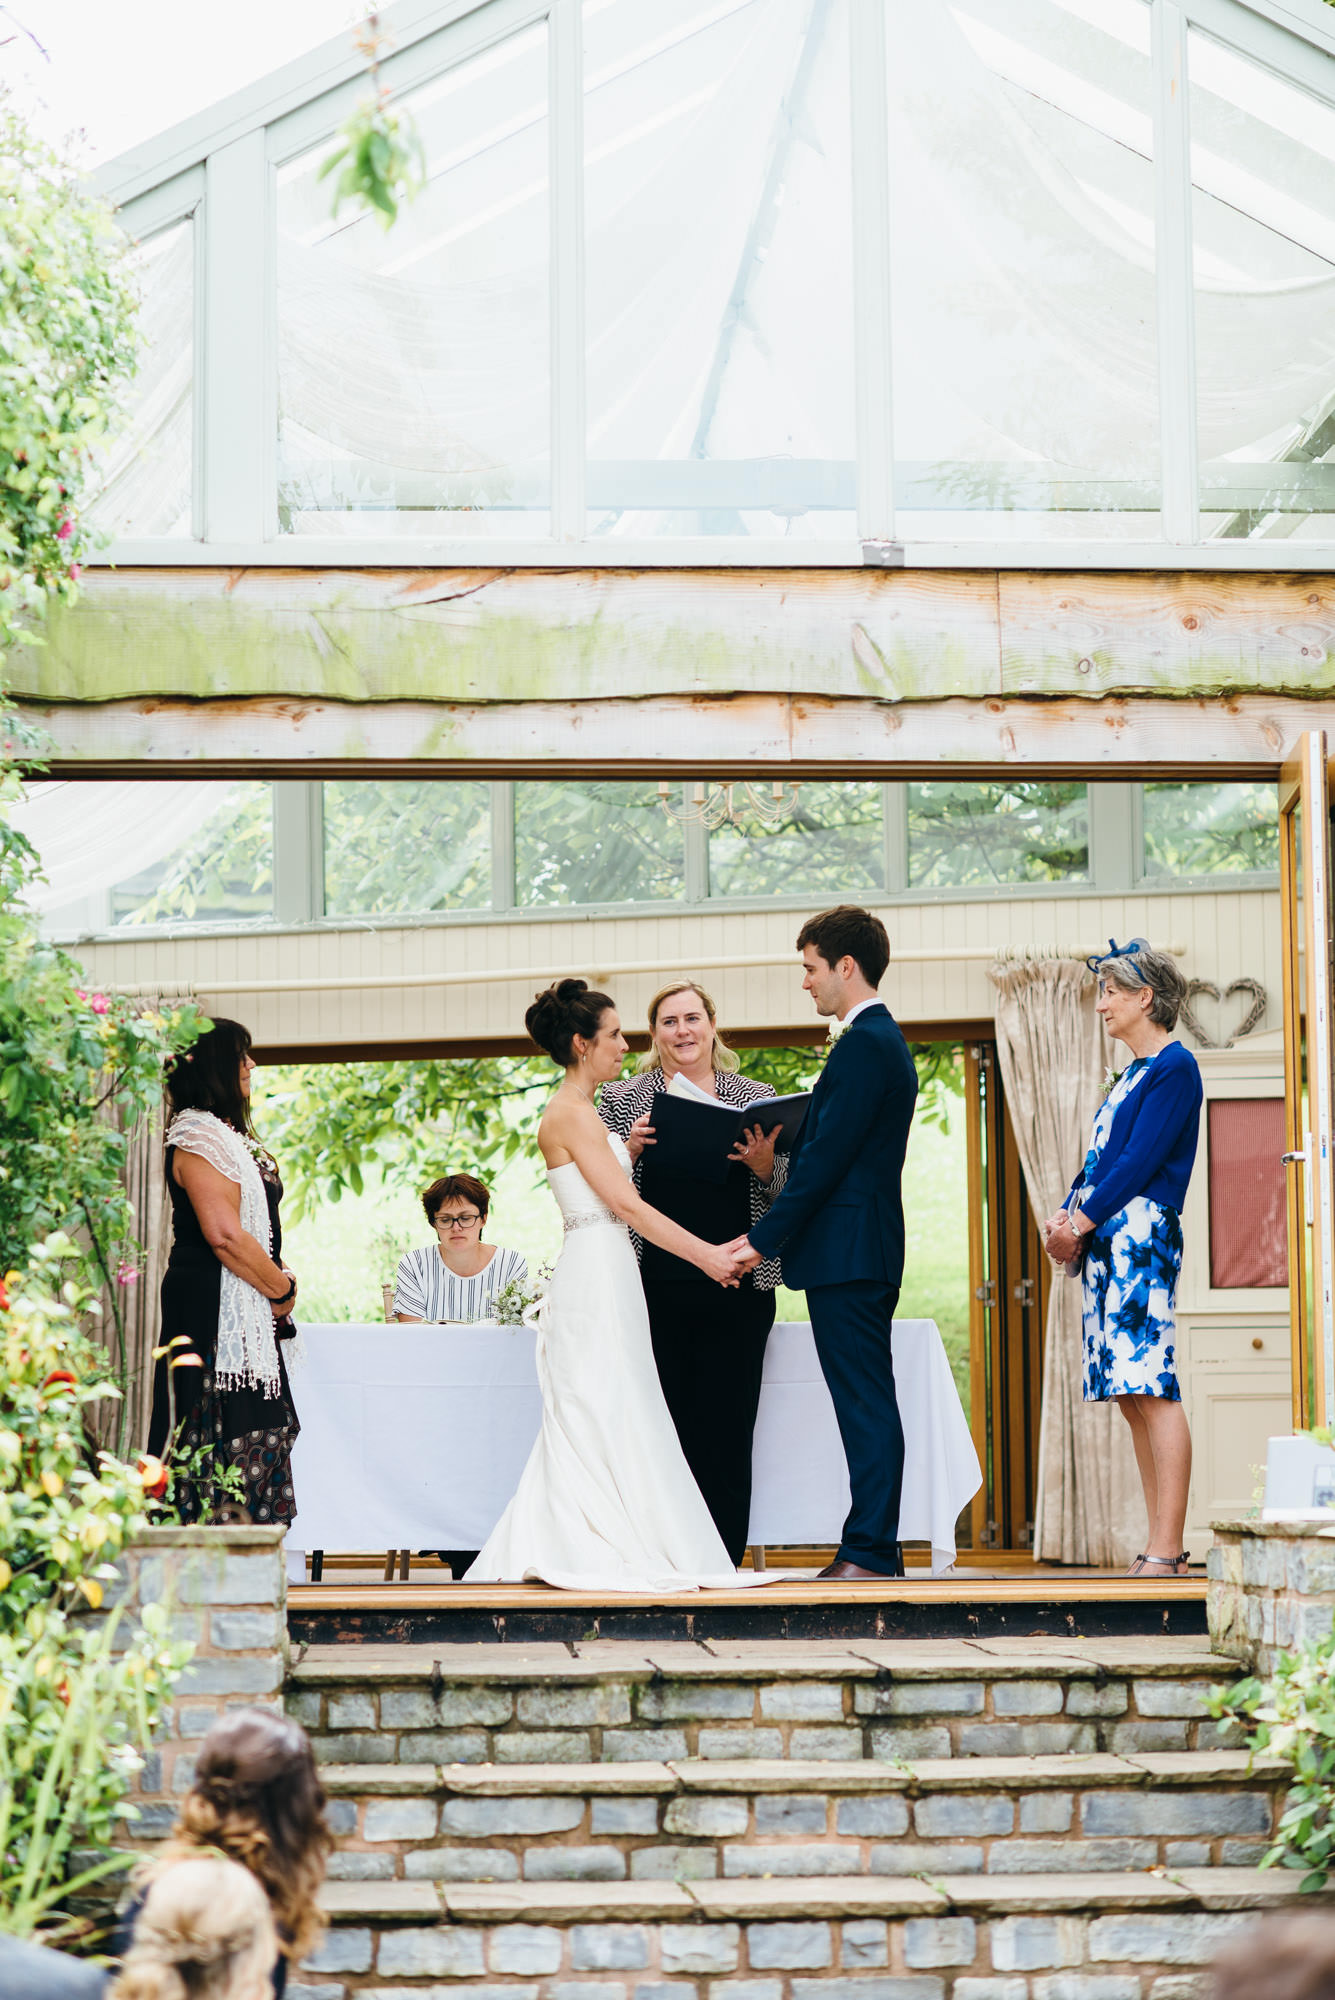 Huntstile organic farm wedding ceremony